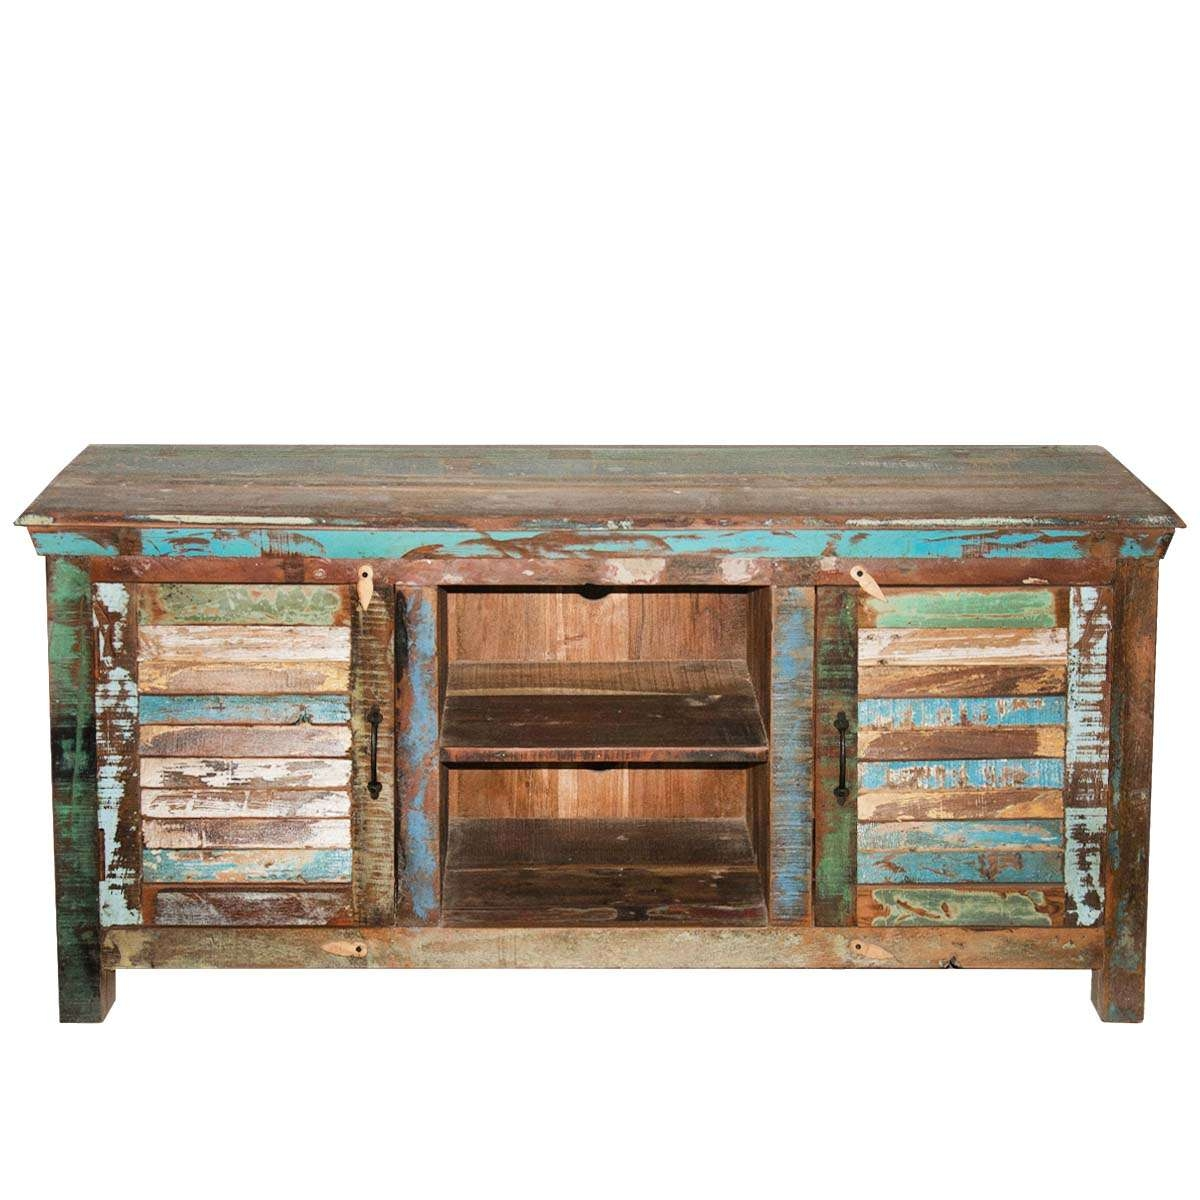 Tv : Stunning Reclaimed Wood And Metal Tv Stands Vintage Retro Box Regarding Reclaimed Wood And Metal Tv Stands (View 16 of 20)